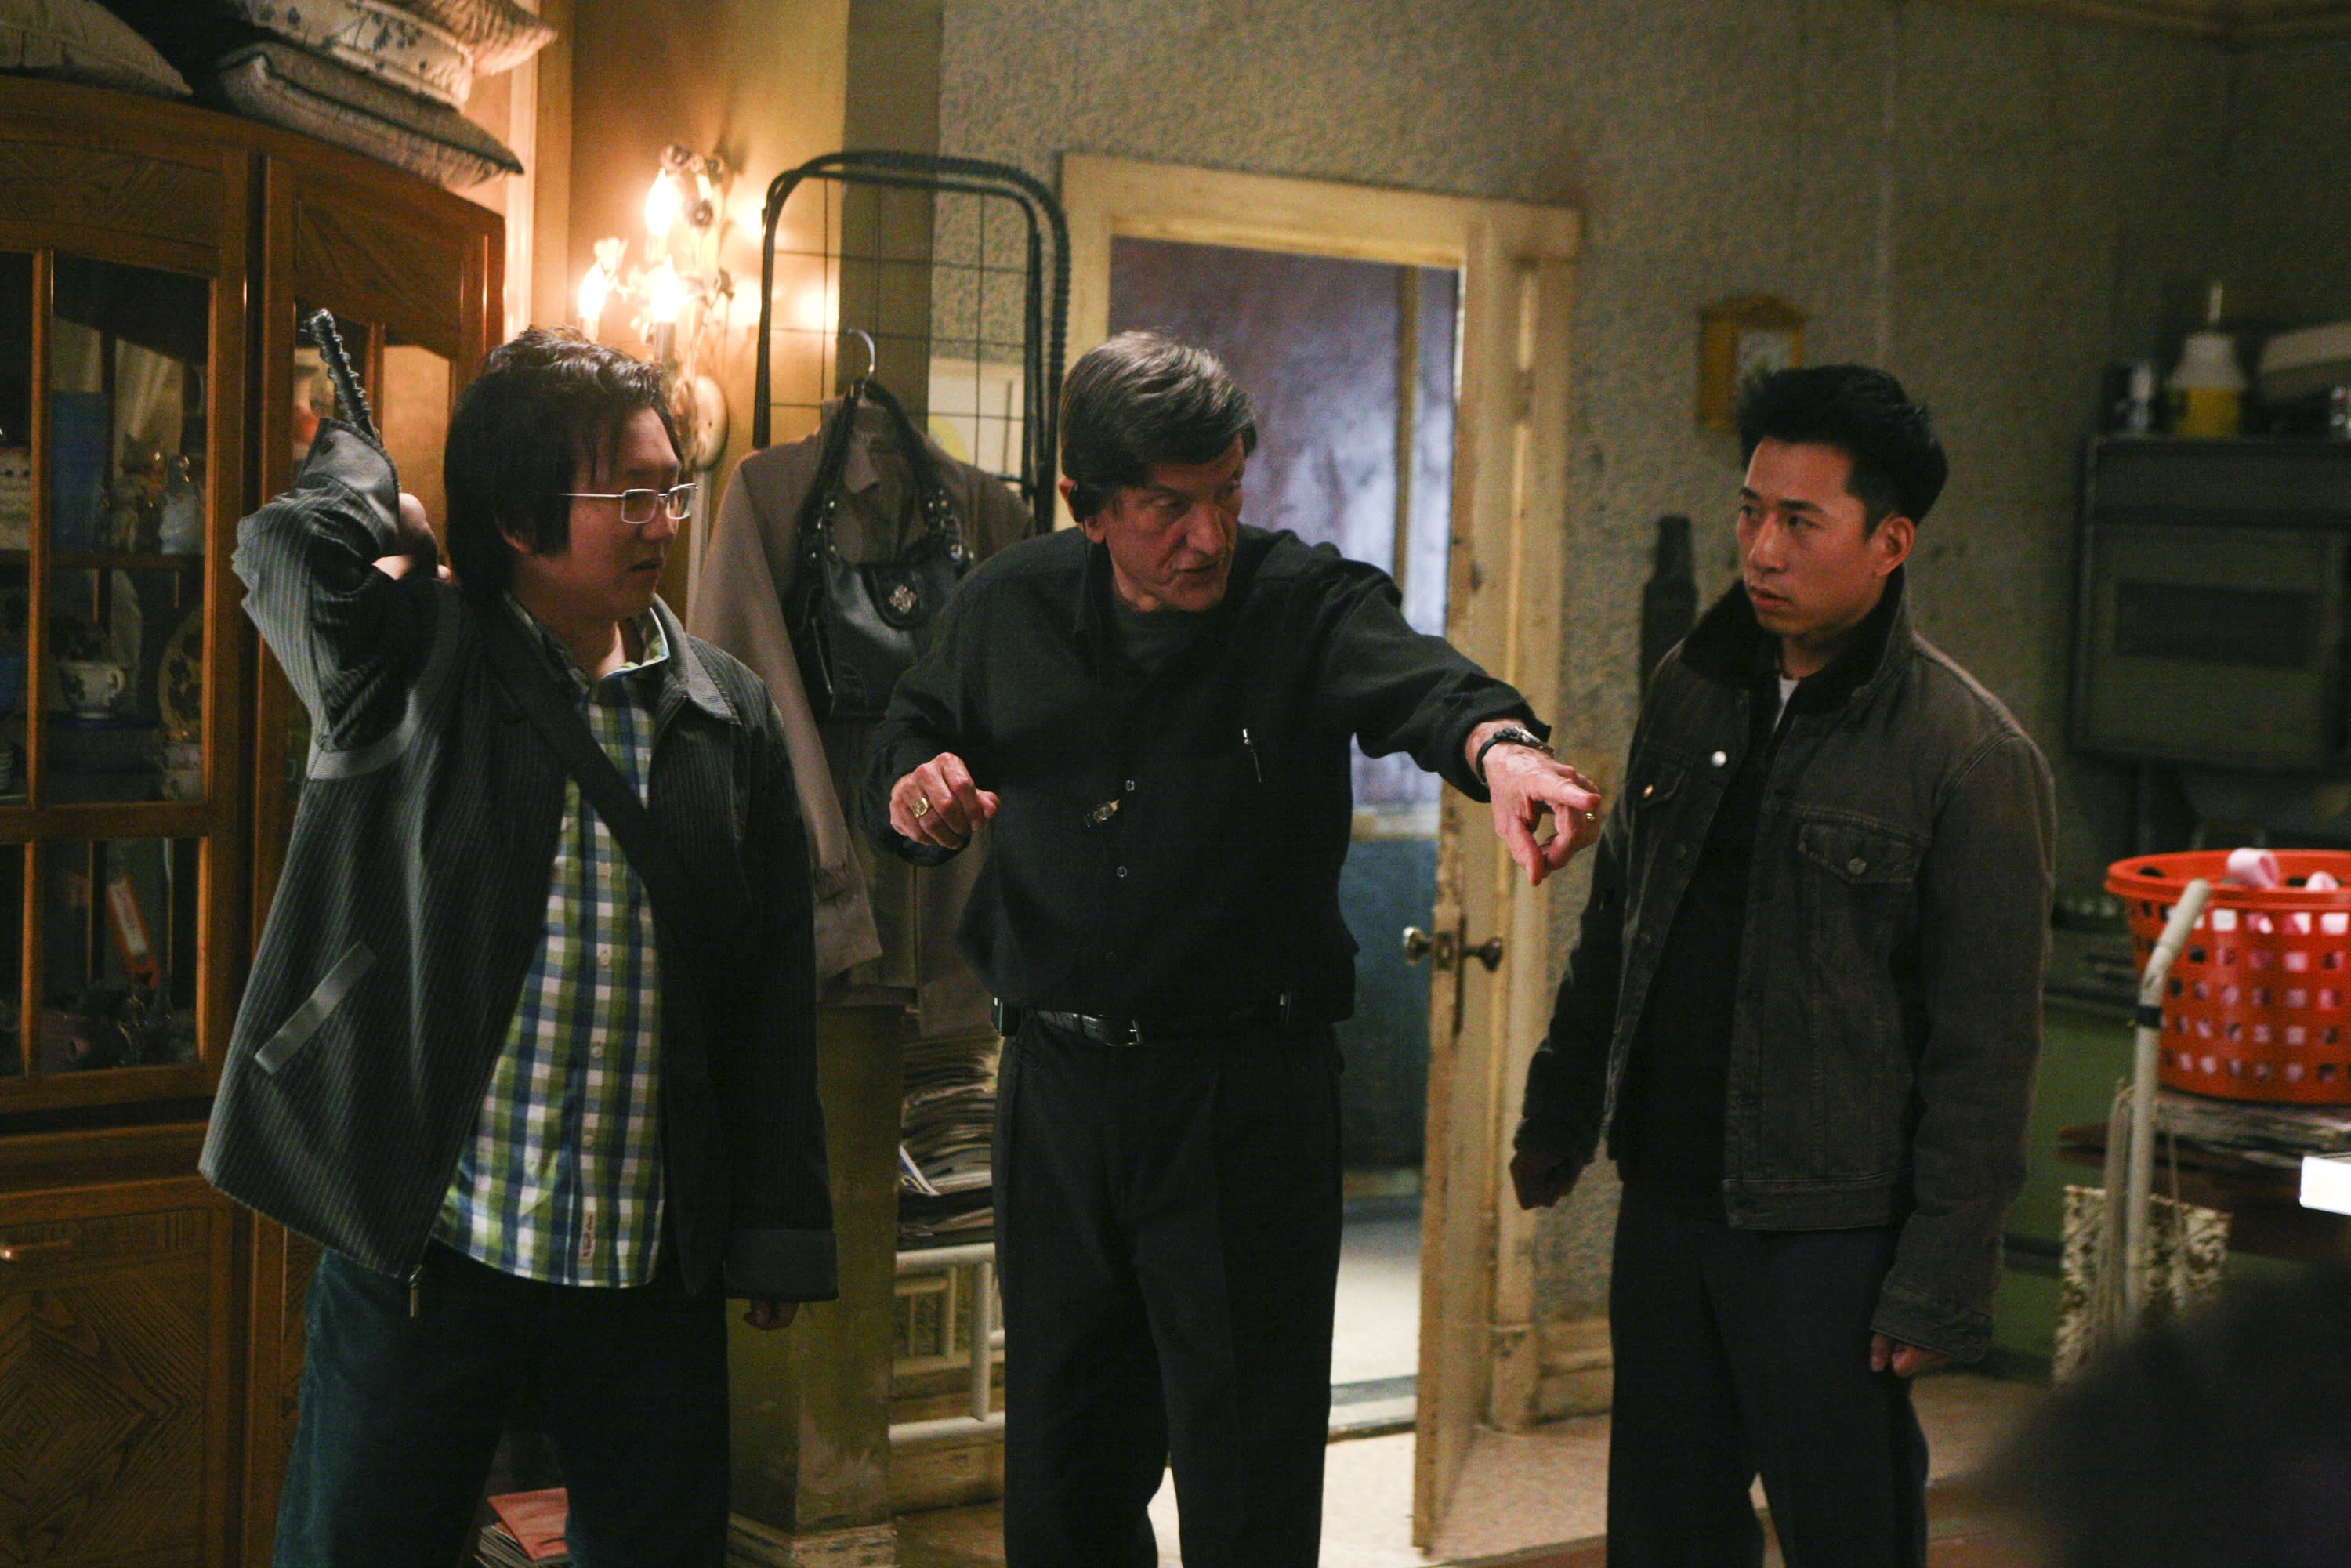 """HEROES -- """"The Hard Part"""" Episode 21 -- Aired 5/7/07 --Pictured: (l-r) Masi Oka as Hiro Nakamura, director John Badham, James Kyson Lee as Ando Masahashi (Photo by Dean Hendler/NBCU Photo Bank/NBCUniversal via Getty Images via Getty Images)"""